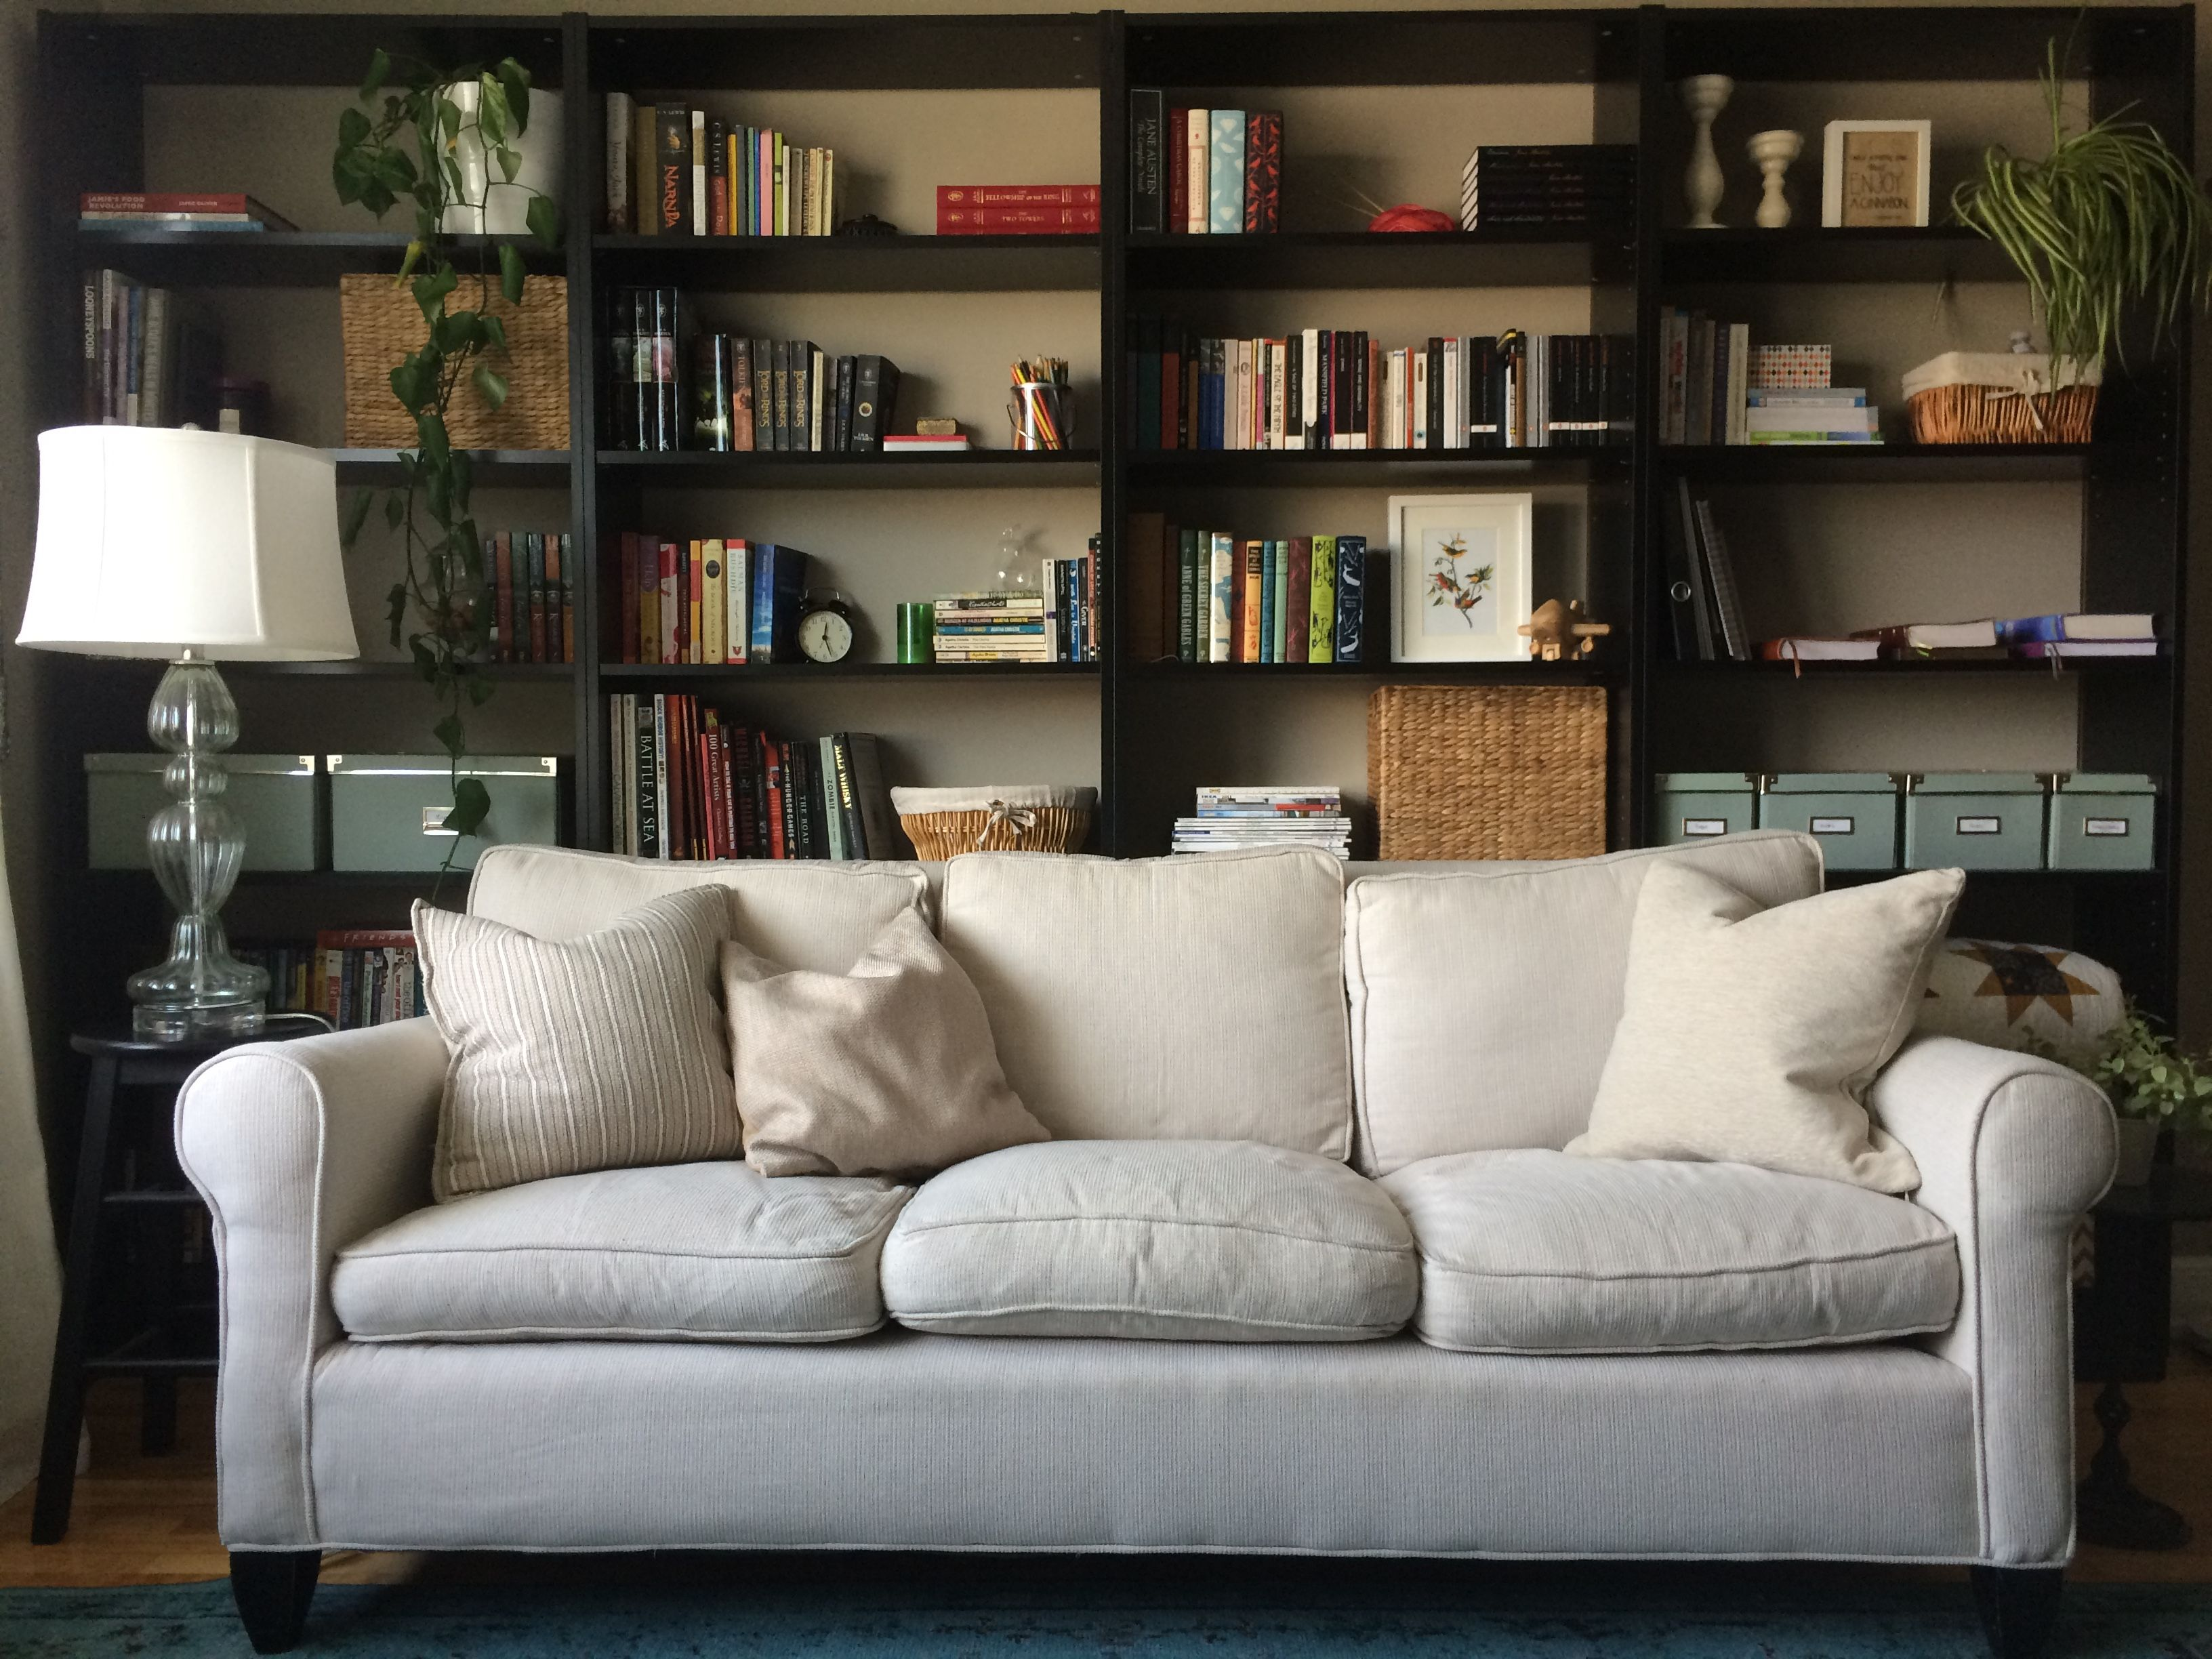 Line Your Living Room With Bookshelves Bookshelves In Living Room Couch Furniture Bookcase Behind Sofa